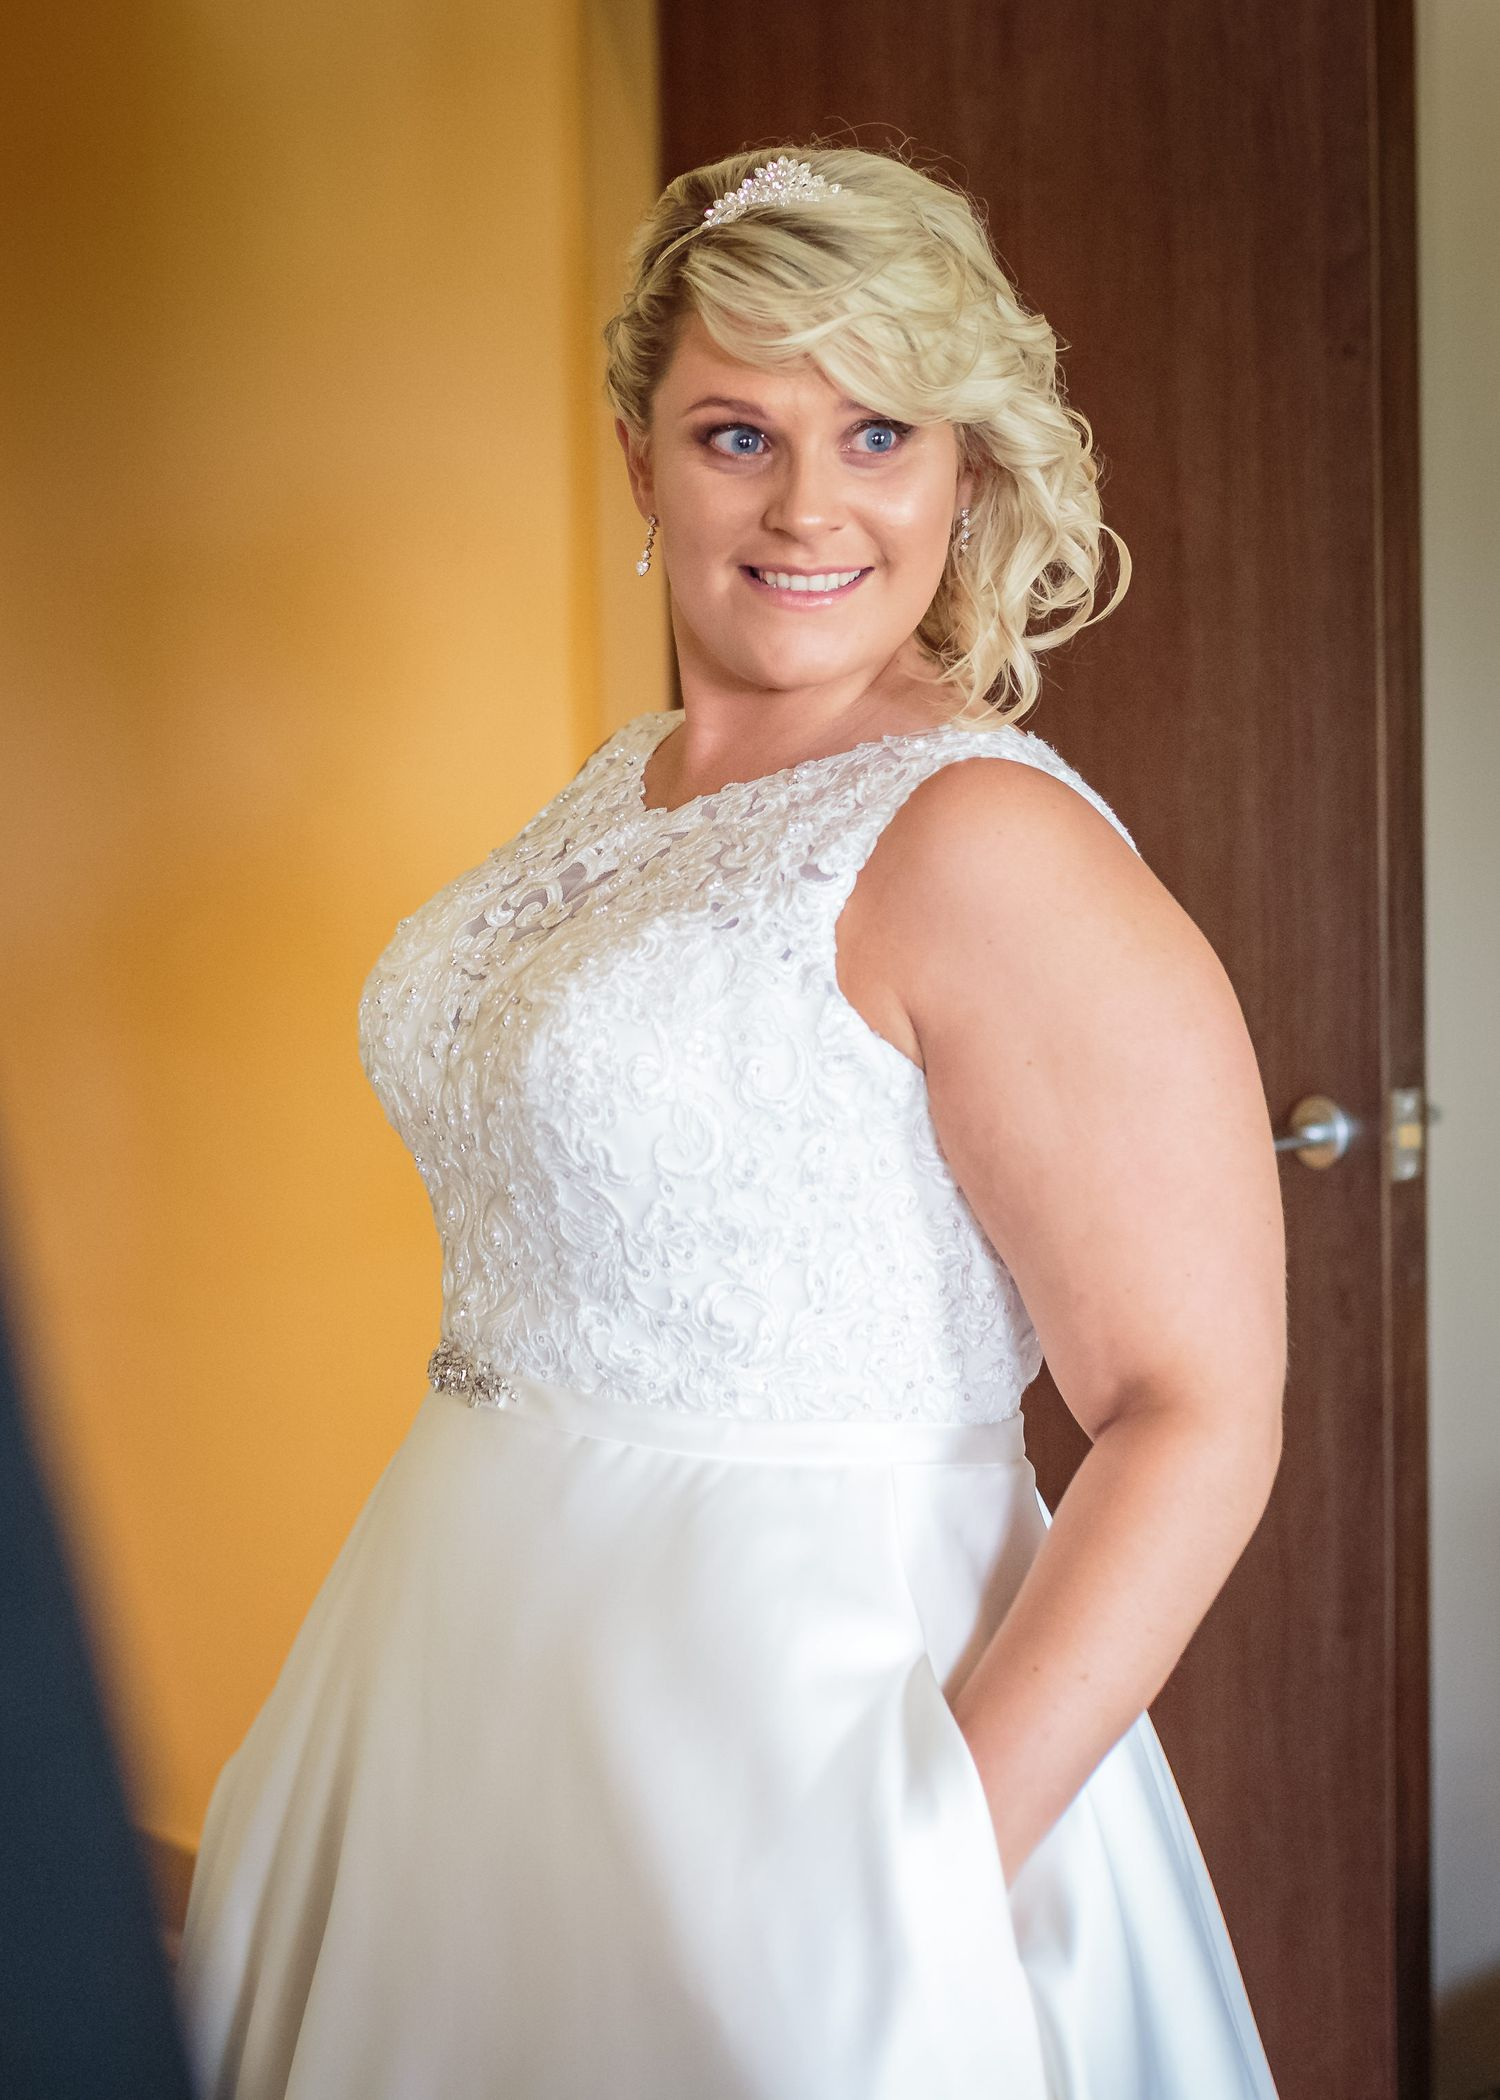 bride smiling with her hands in the pockets of her wedding dress